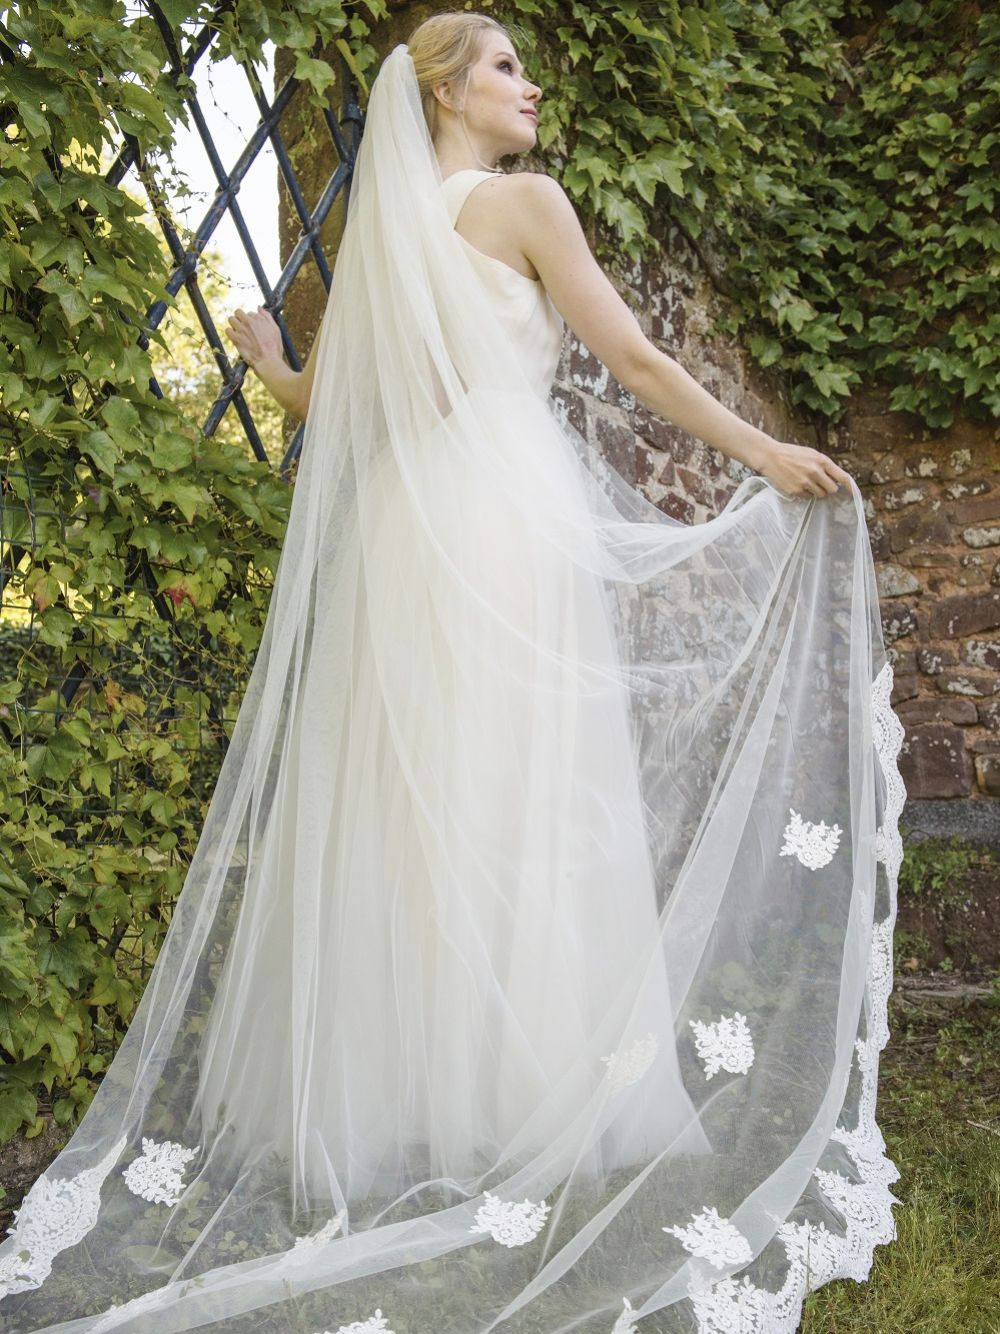 Joyce Jackson Lunaria Lace Edge Chapel Length Veil with Lace Motifs